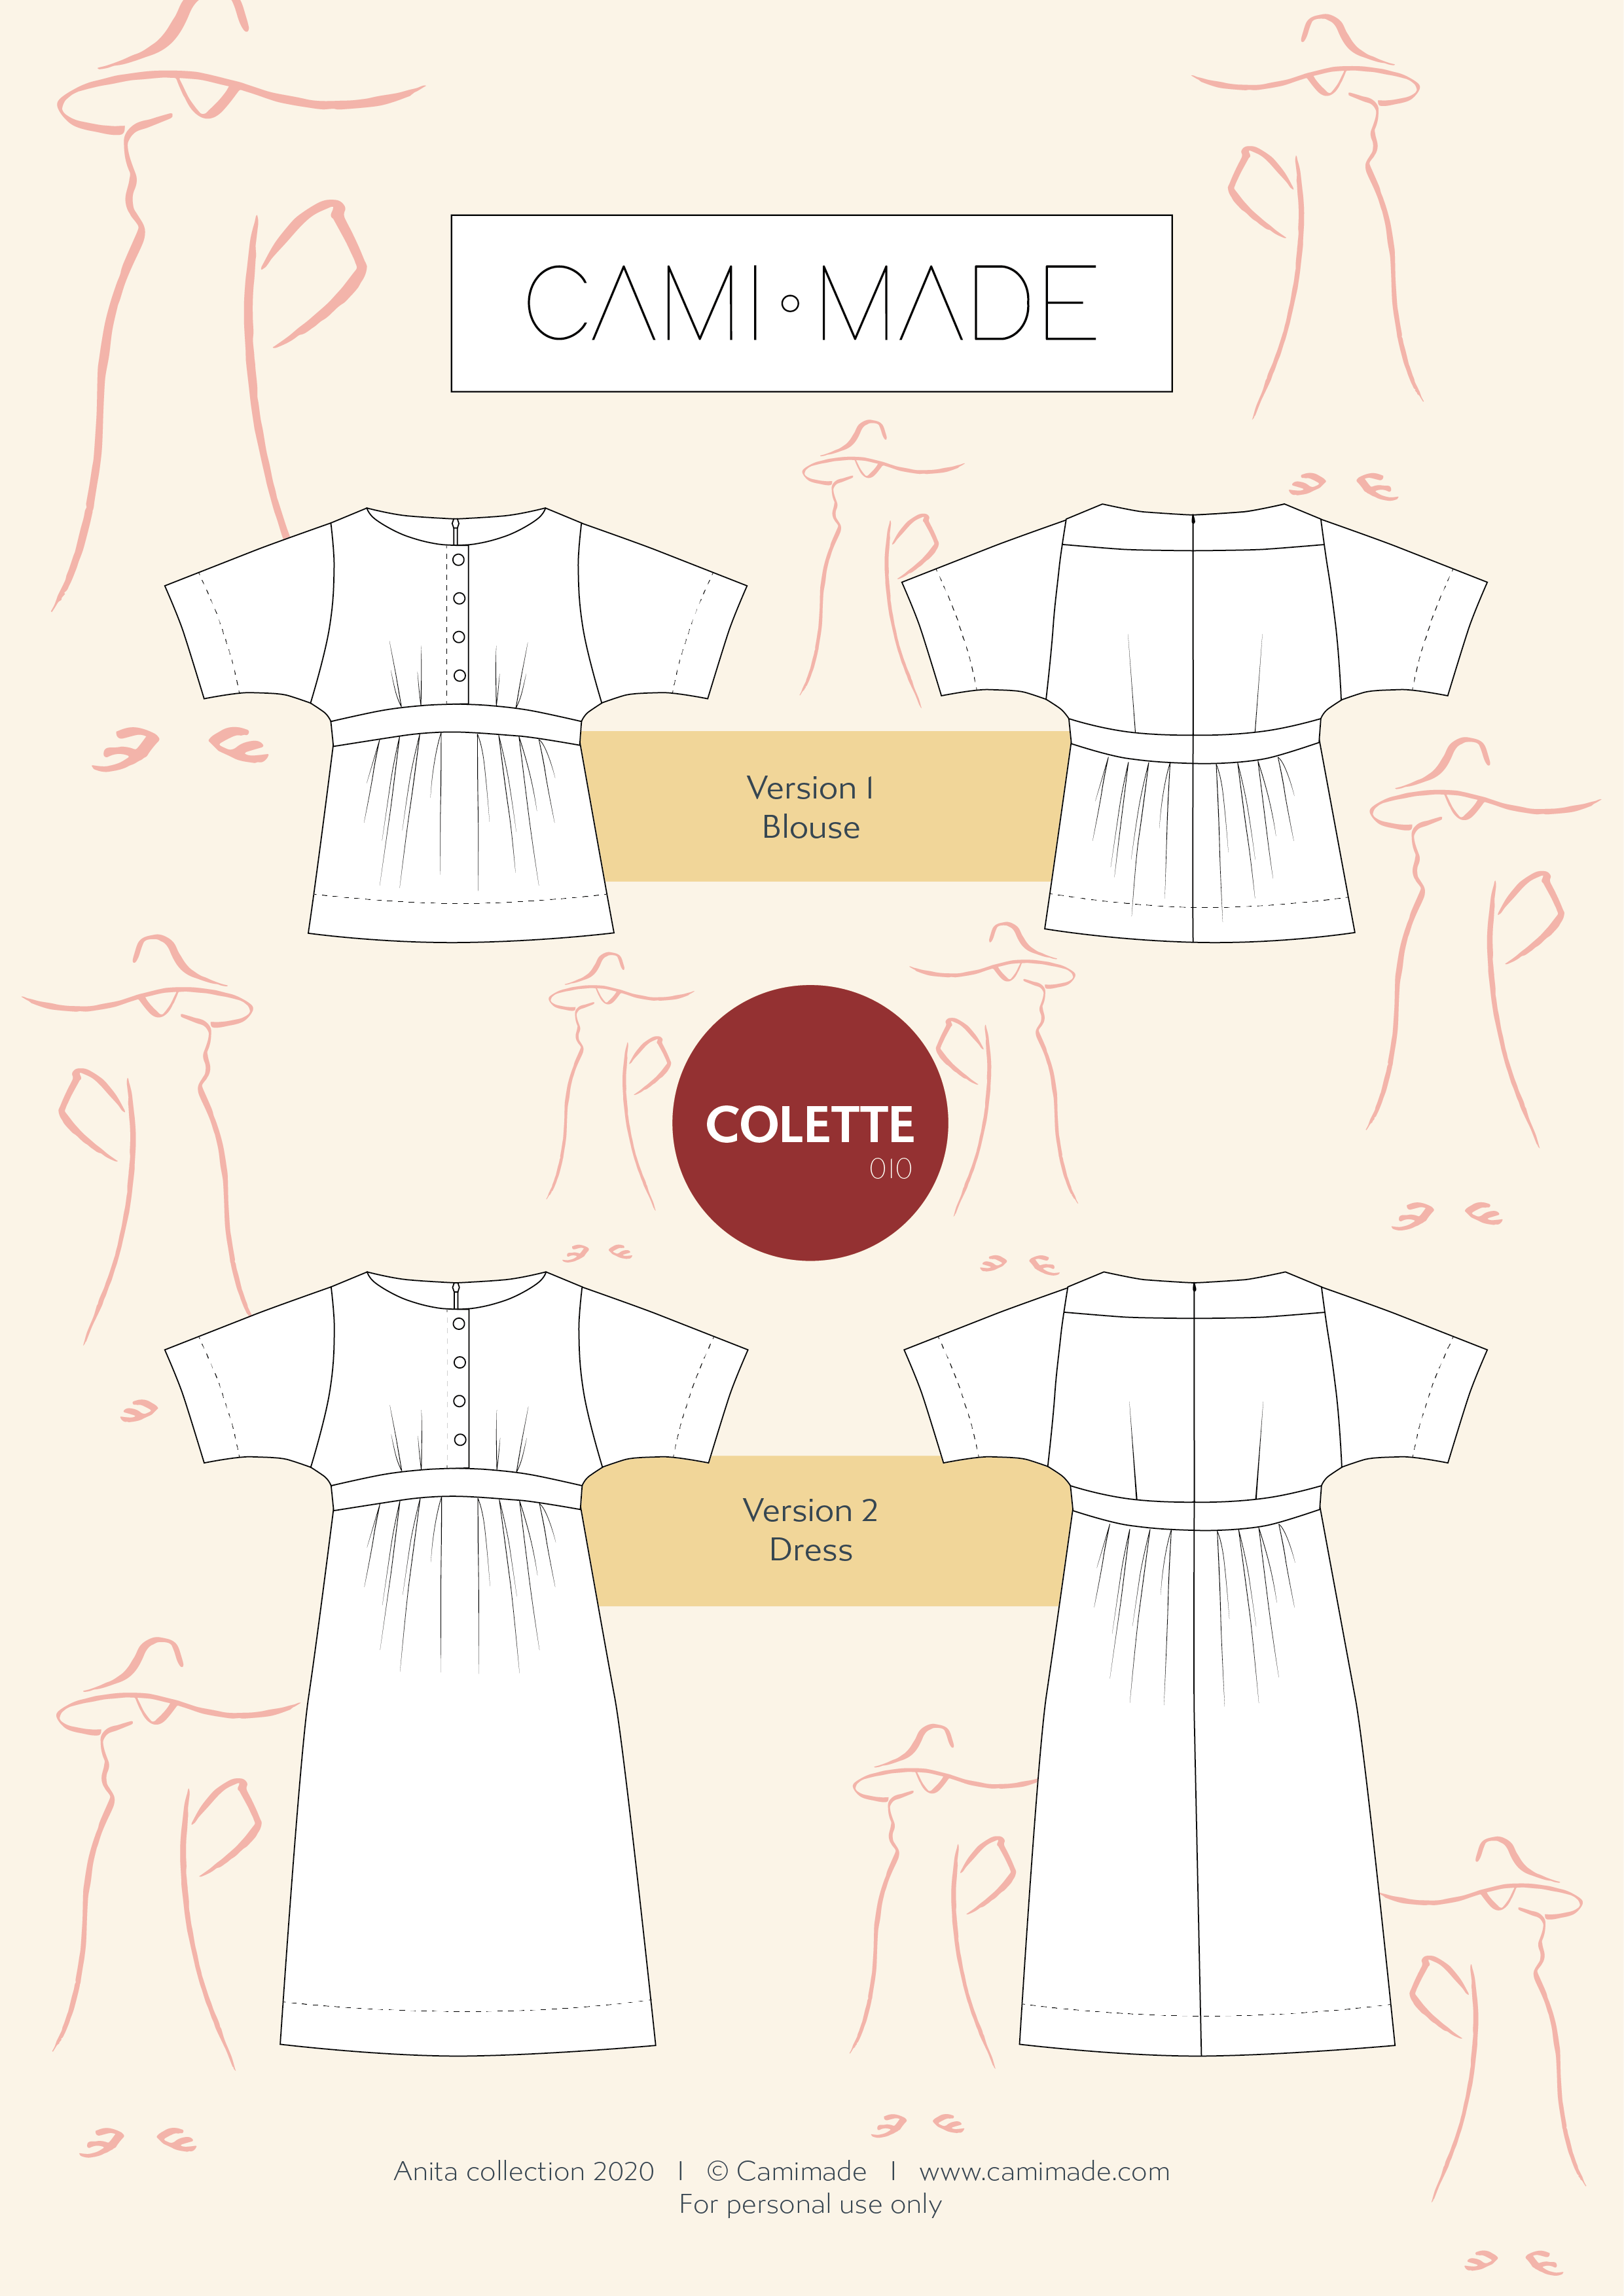 Patron-robe-colette-camimade-page-1